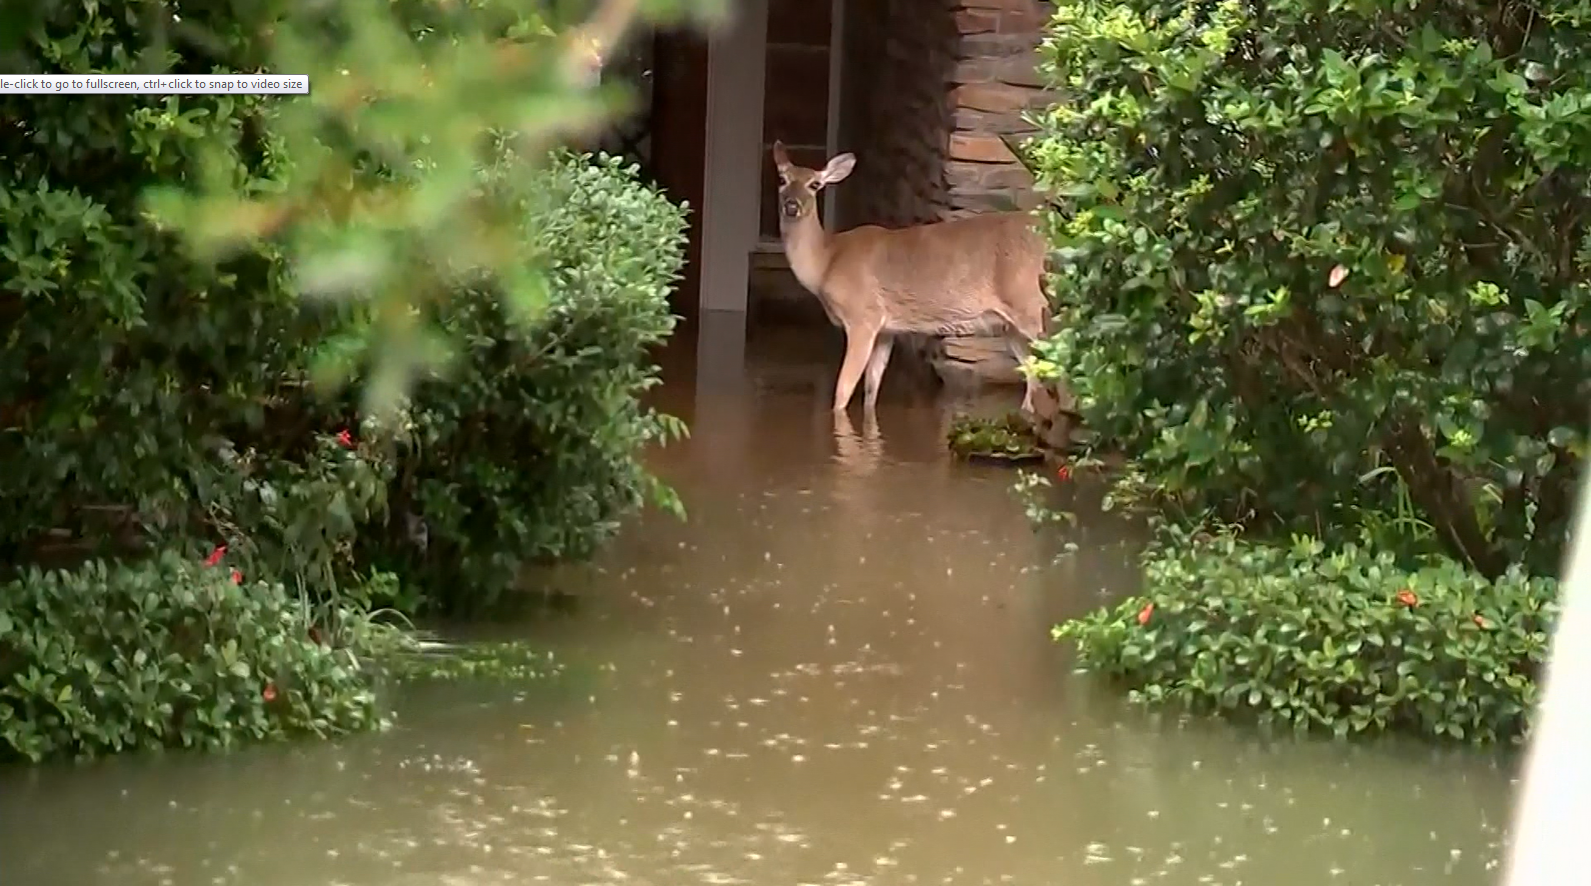 Deer spotted in flood waters (KTRK / CNN)